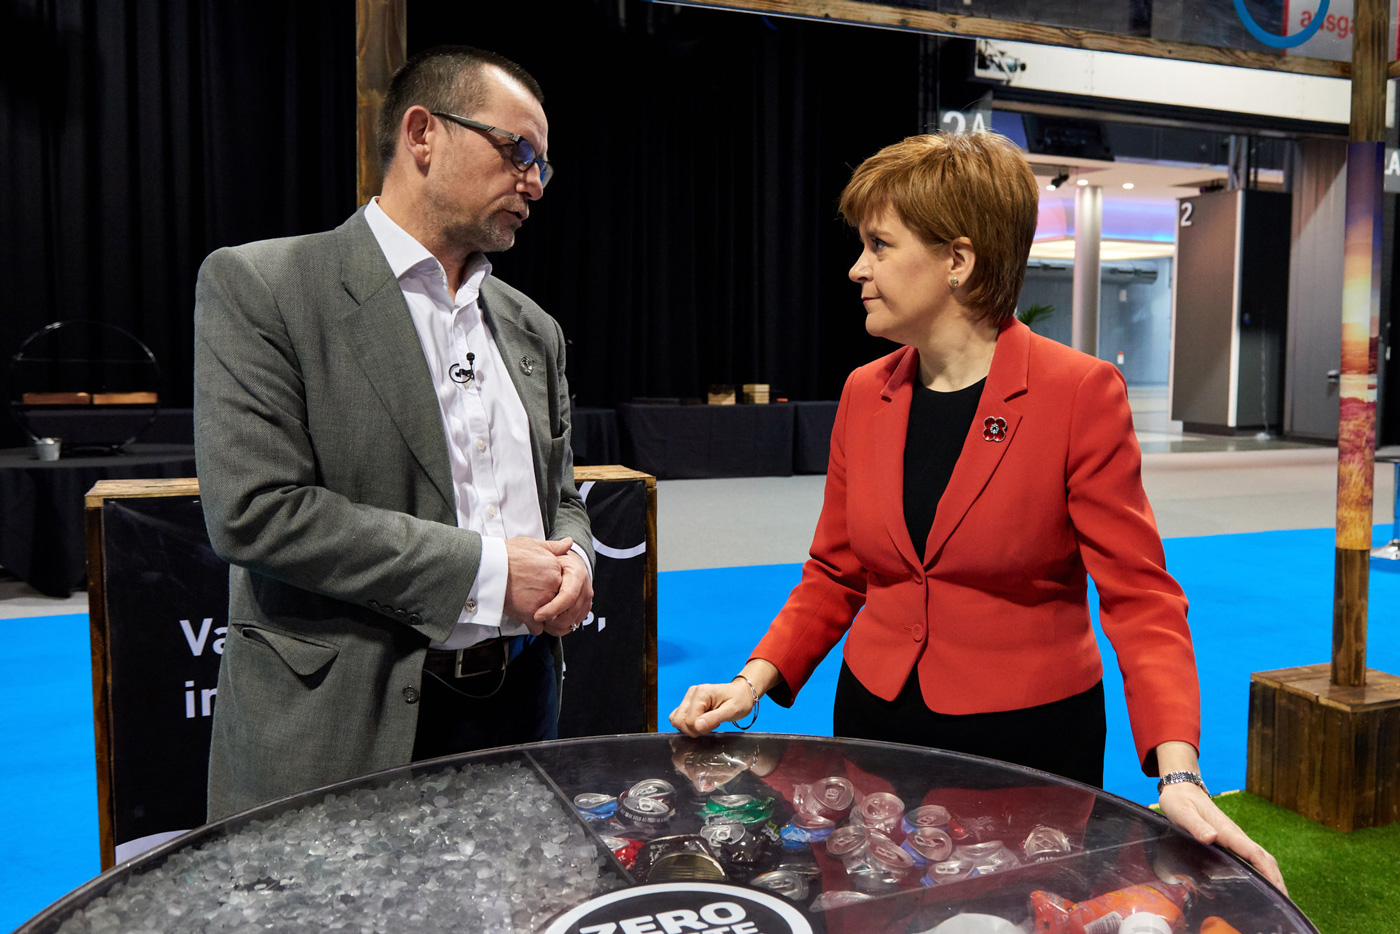 Zero Waste Scotland CEO Iain Gulland with Scottish First Minister Nicola Sturgeon